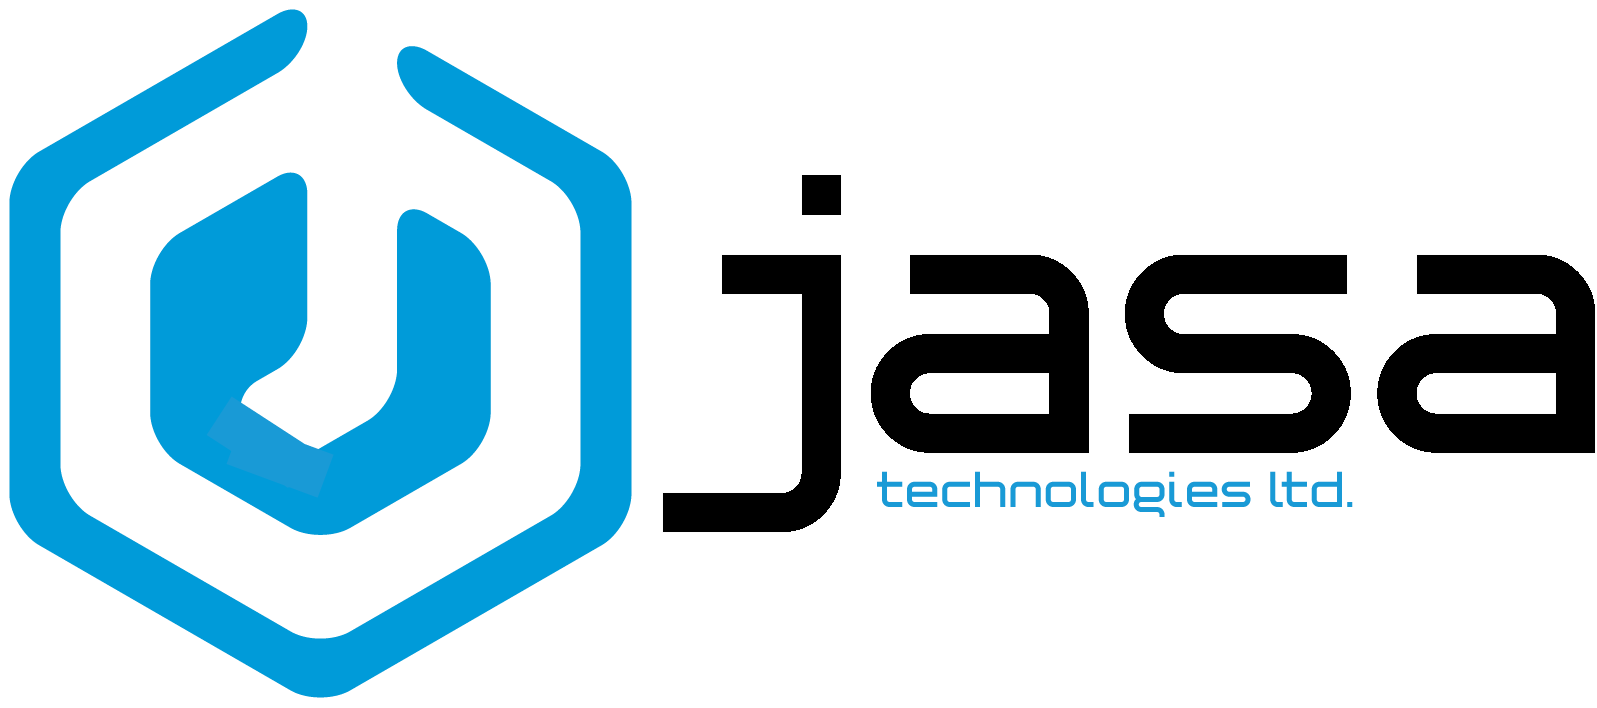 Jasa Technologies Ltd.